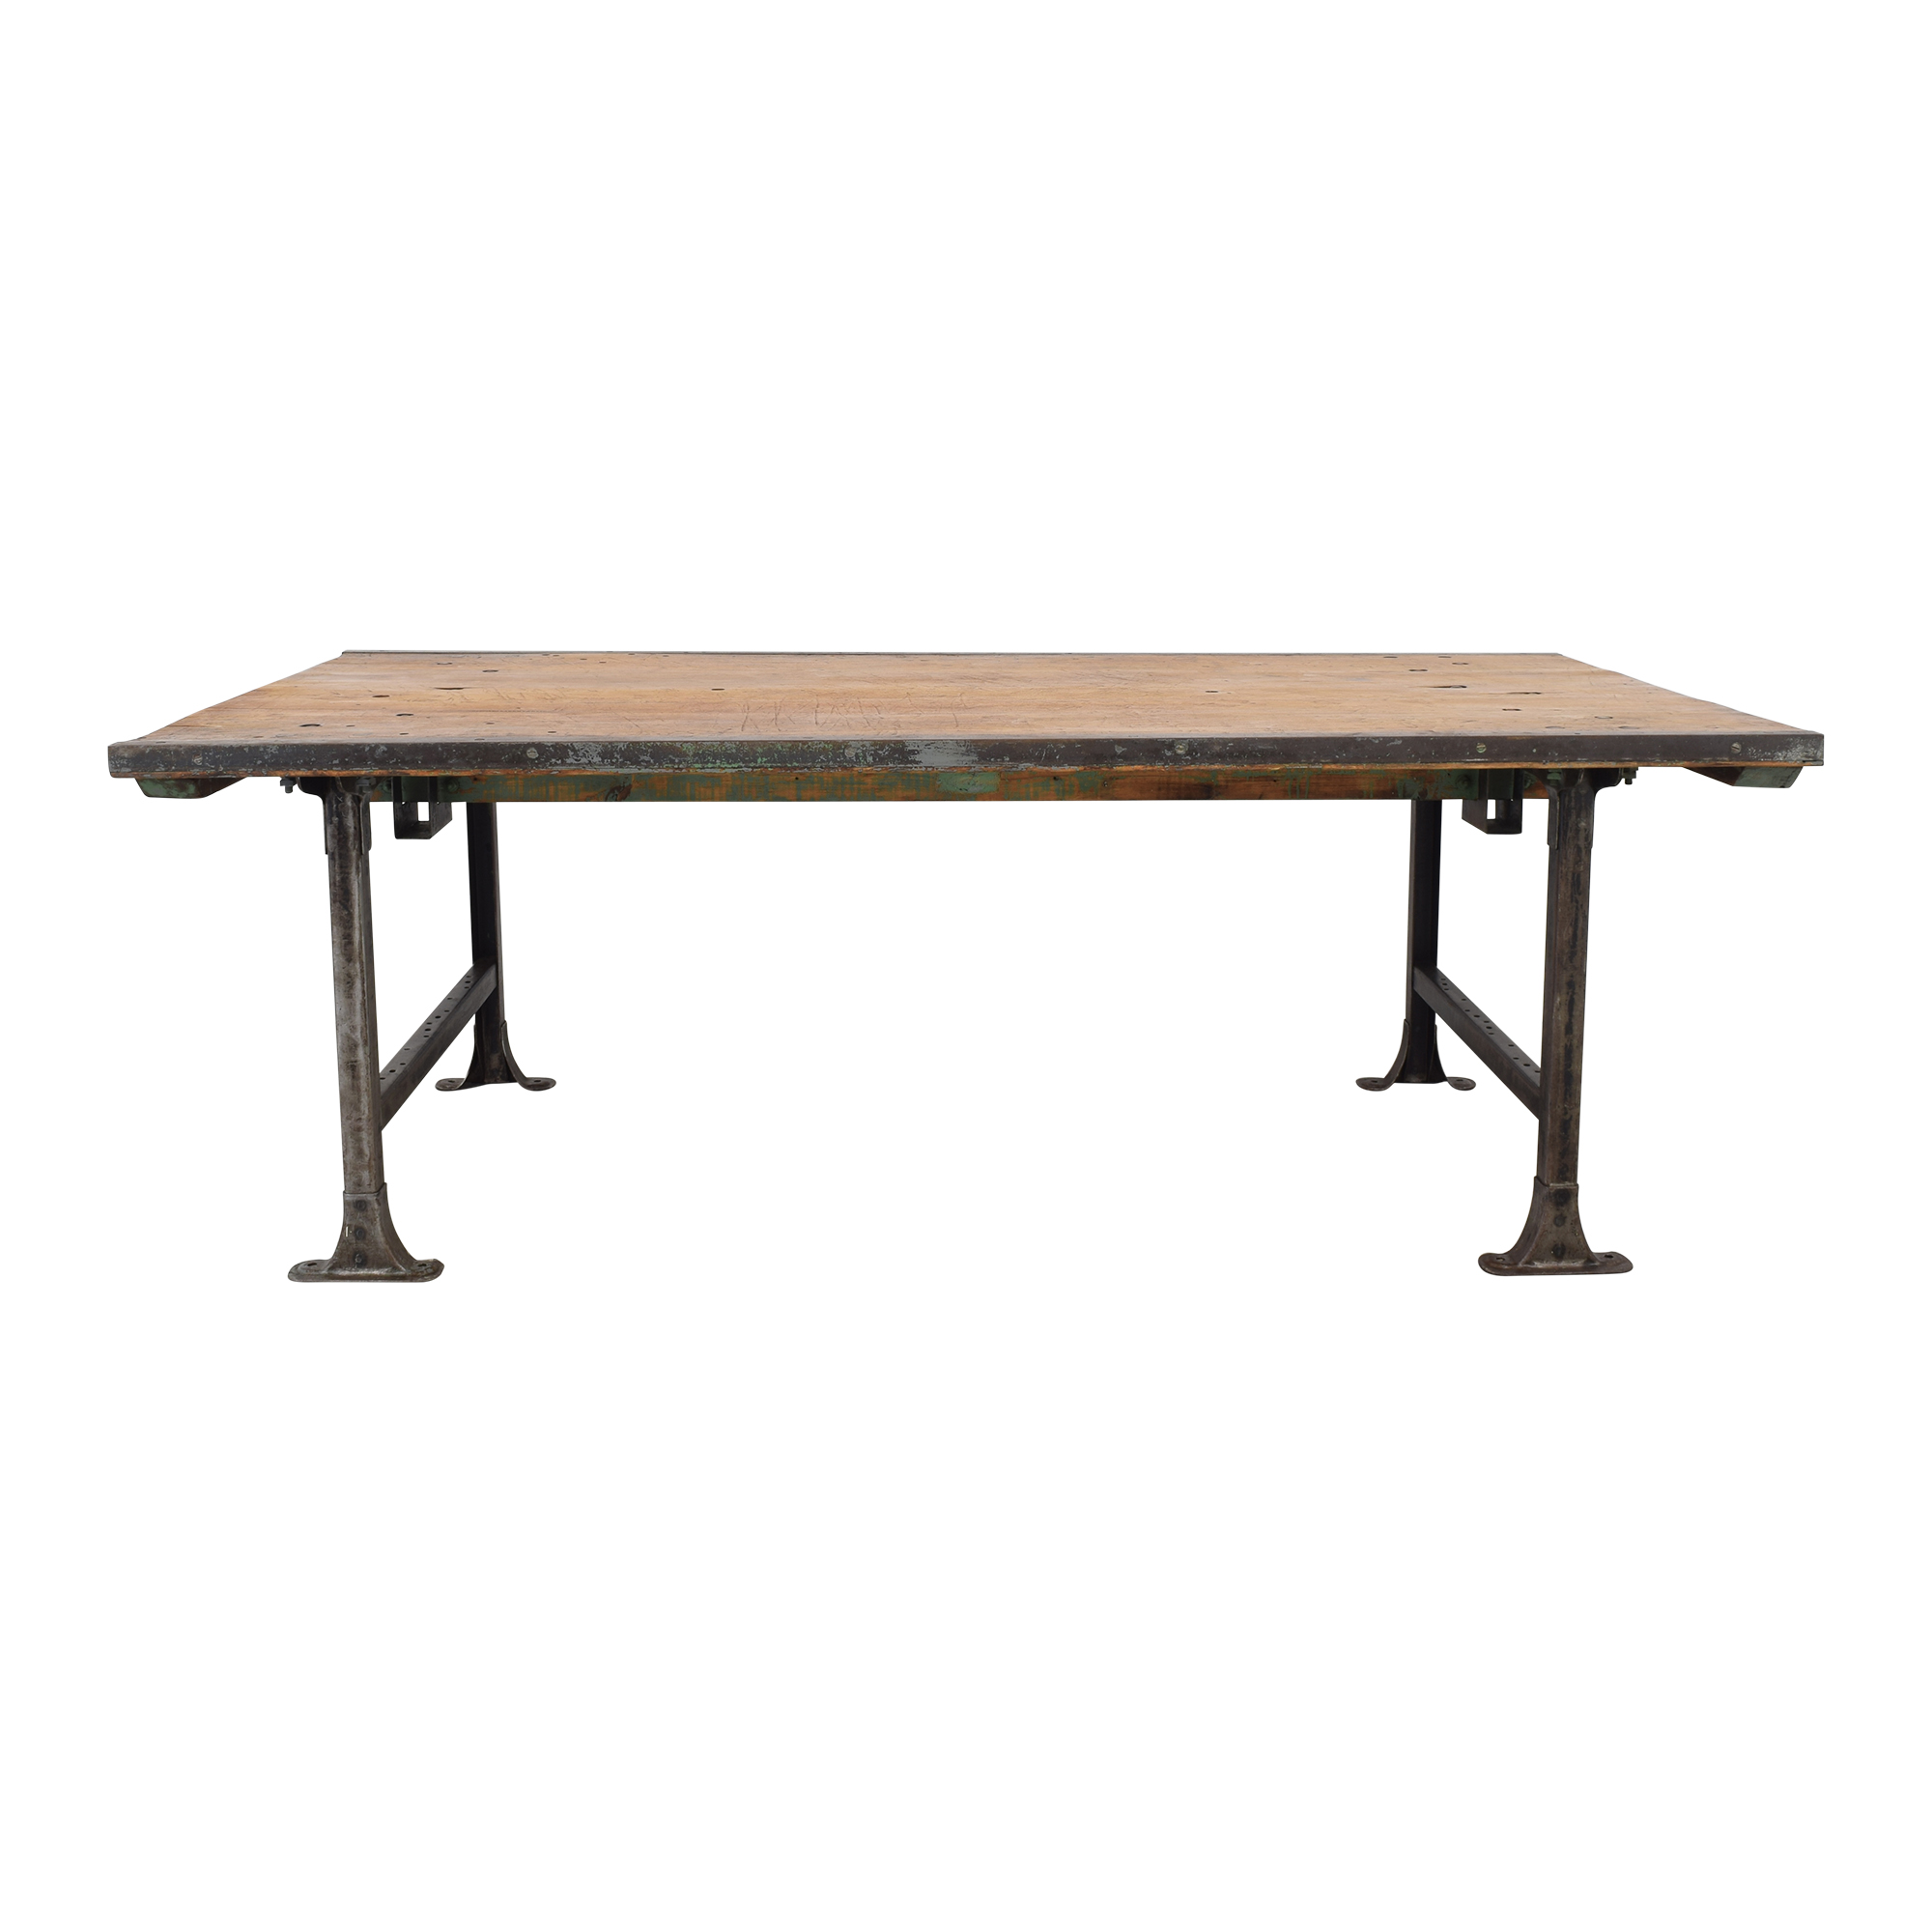 ABC Carpet & Home ABC Carpet & Home Vintage Industrial Dining Table